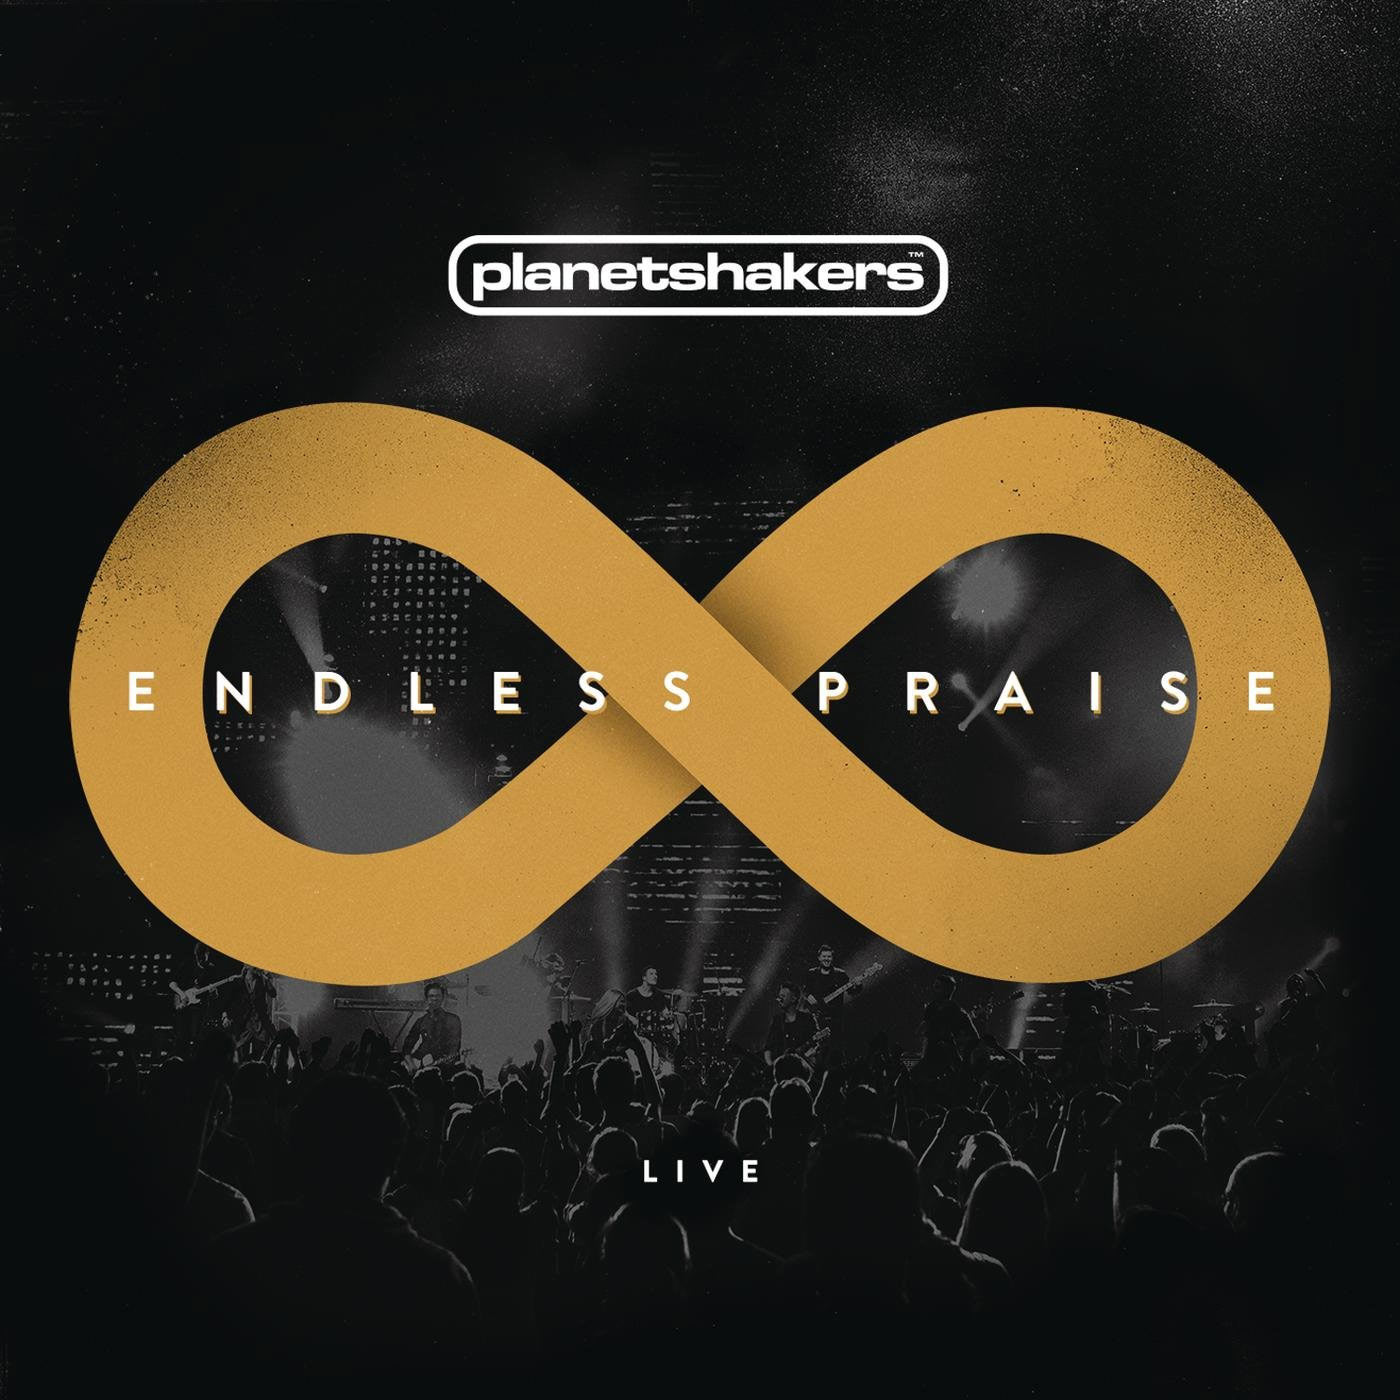 Turn It Up - Planetshakers